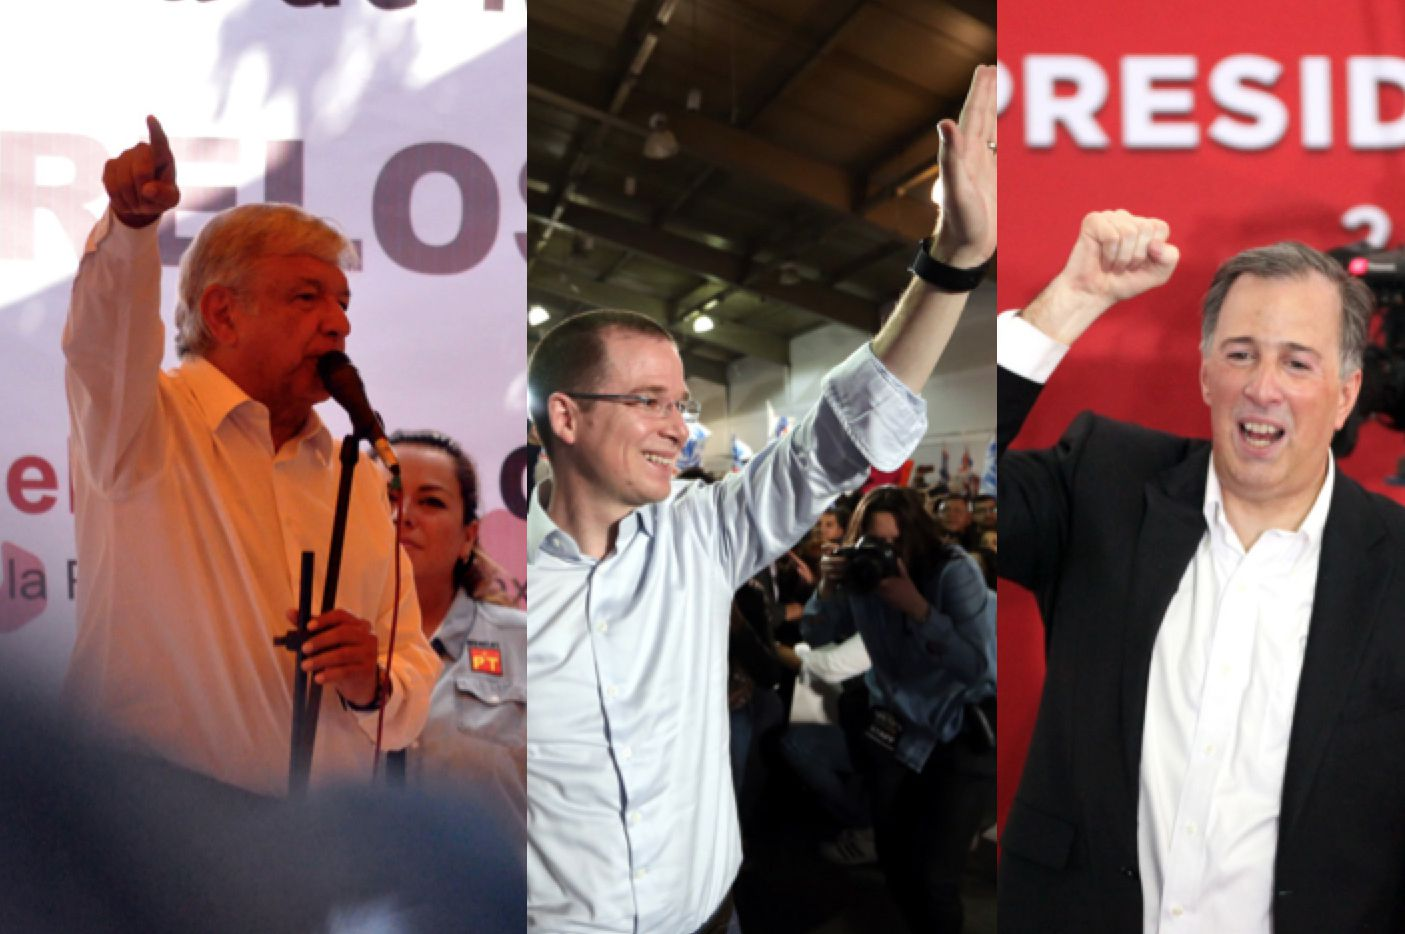 Andrés Manuel López Obrador (left), who has run twice before and is now campaigning as the populist founder of the Morena party, is the early favorite in the Mexican presidential race. He is followed by Ricardo Anaya of the National Action Party, or PAN, and former Finance Minister Jose Antonio Meade of the Institutional Revolutionary Party.